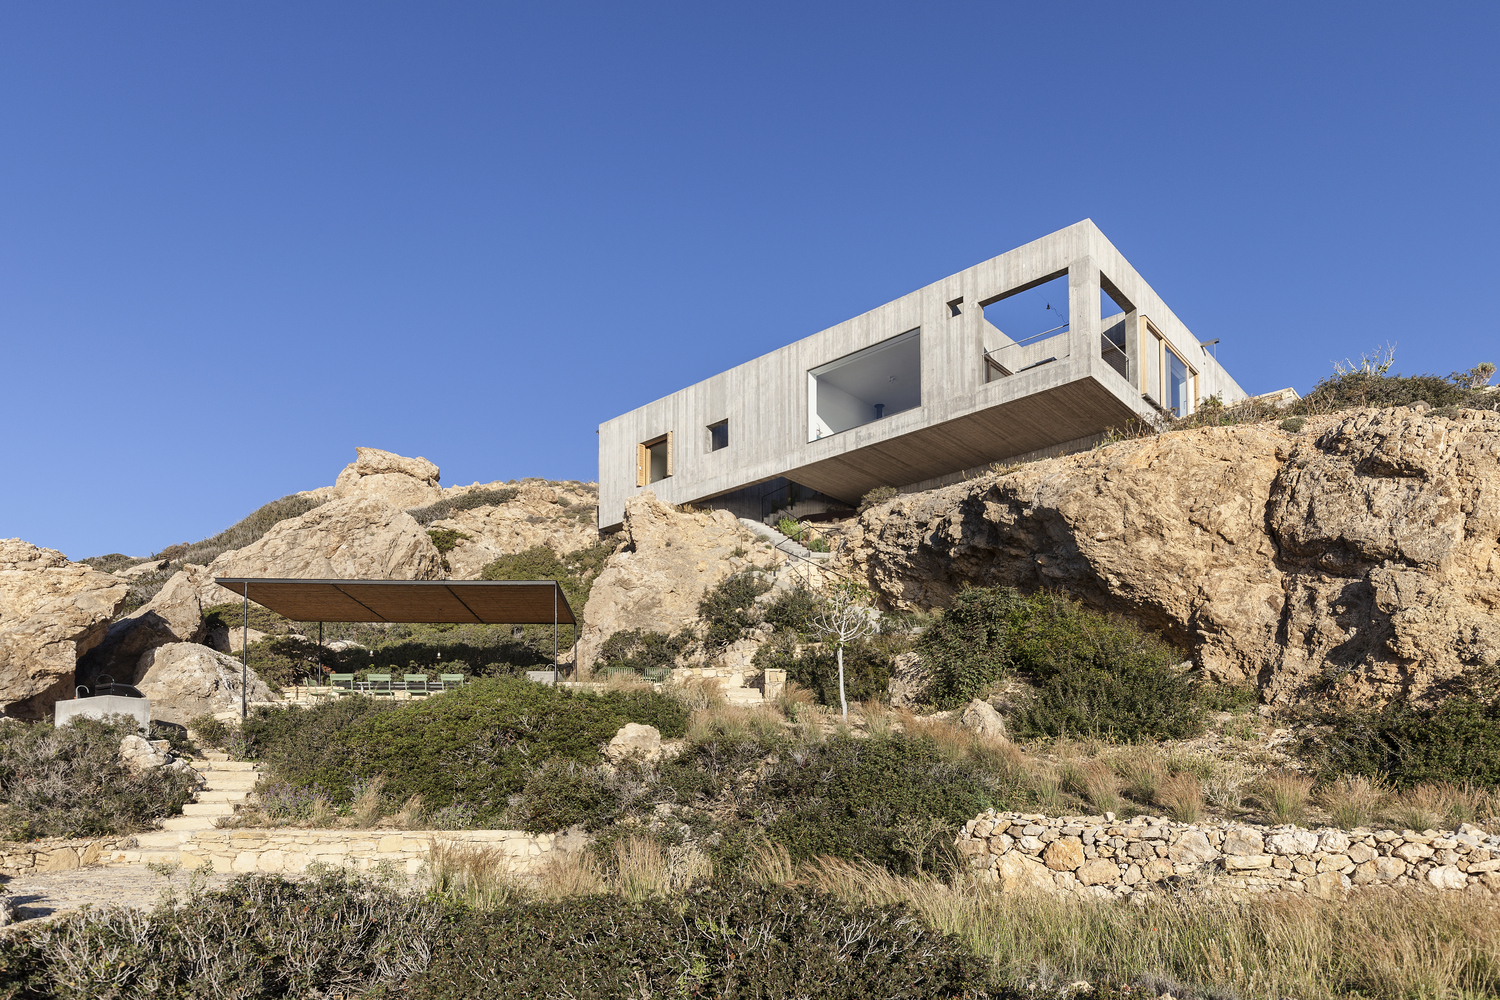 Floating Concrete: A Breezy Cantilevered Cliffside House in Greece